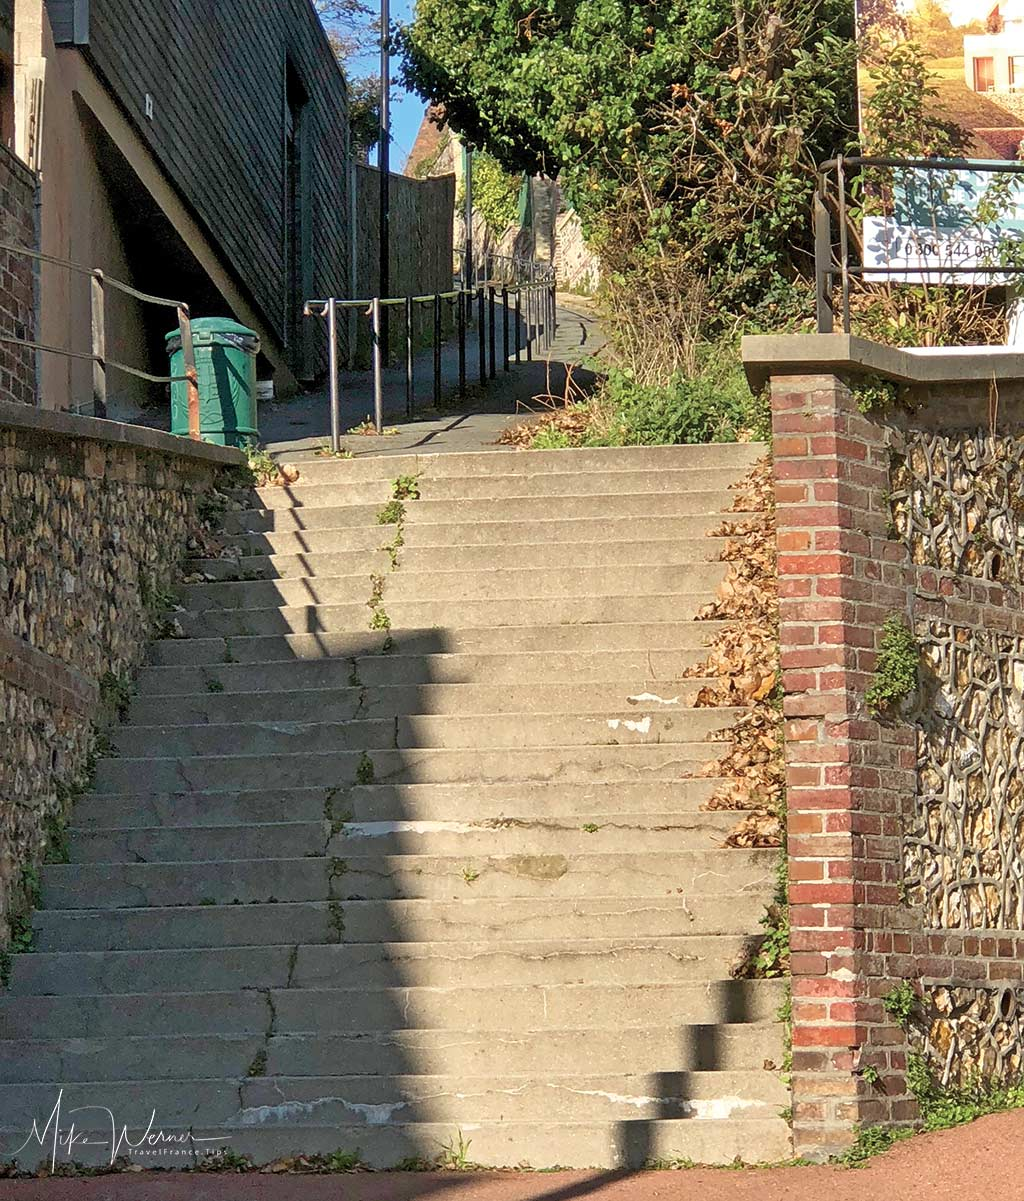 """Bottom part of the """"Sentier du Pain du Sucre"""" that brings you from Le Havre to the top of the cliffs at Sainte-Adresse"""